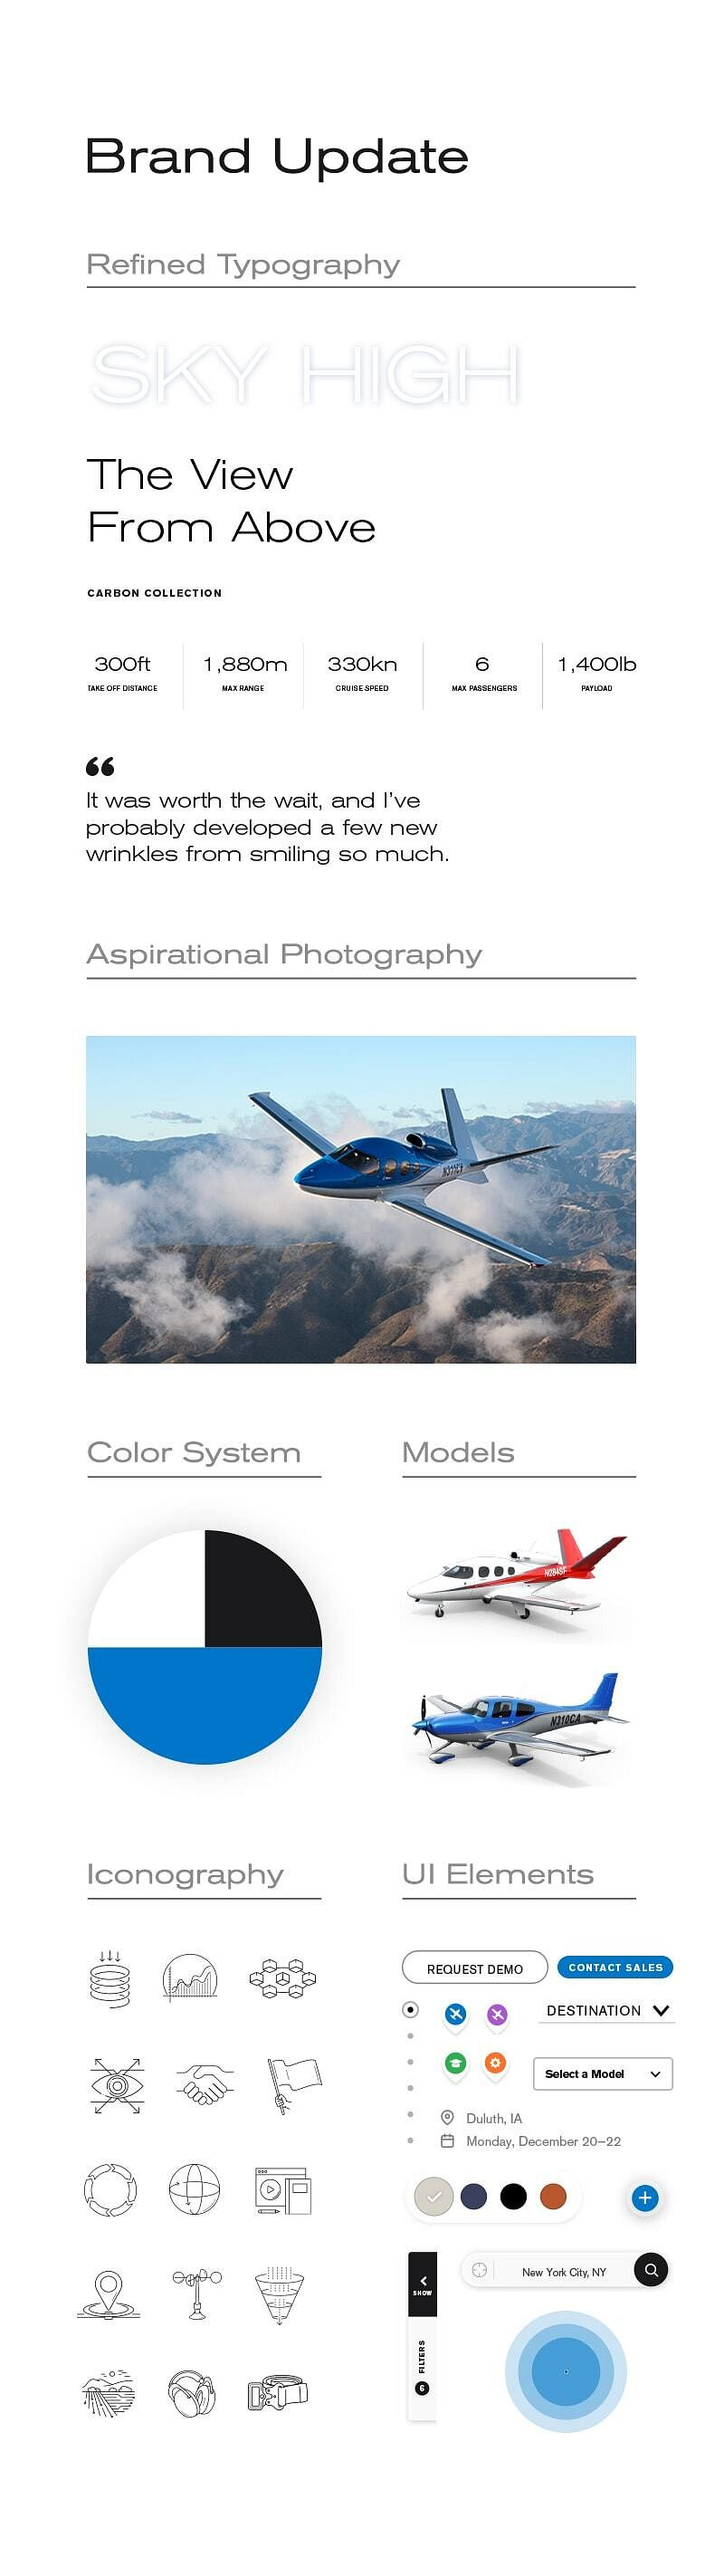 Examples from the Cirrus Brand Update, including new typography, iconography, UI elements, photography, and color systems.